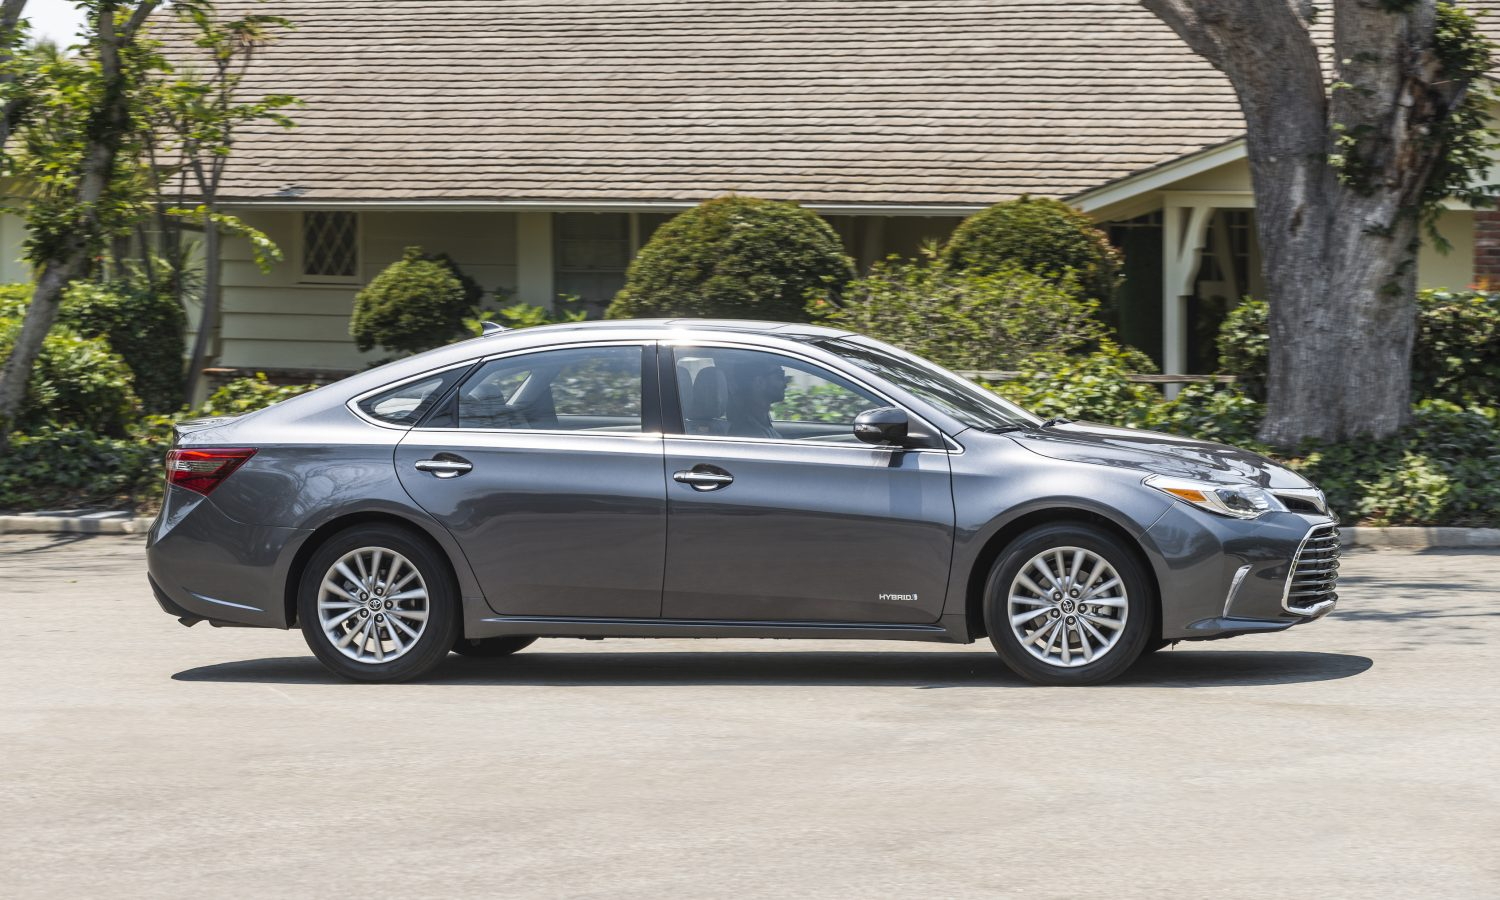 Toyota Avalon: A Paragon of Premium Level Value, Now Advancing the Cause With Standard Toyota Safety Sense P